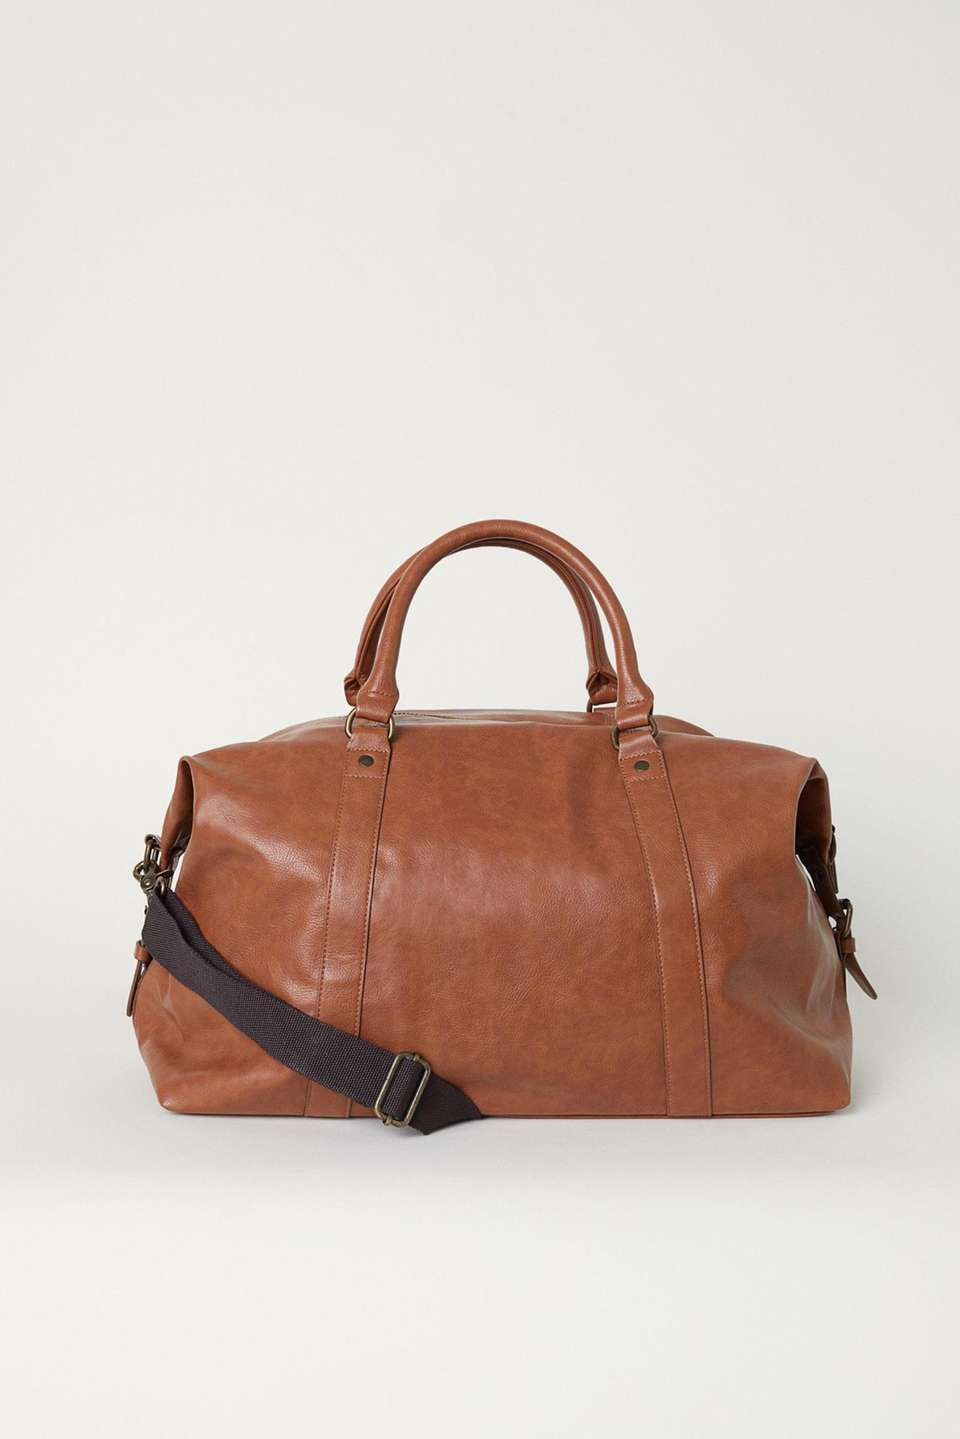 This faux leather bag is perfect for a